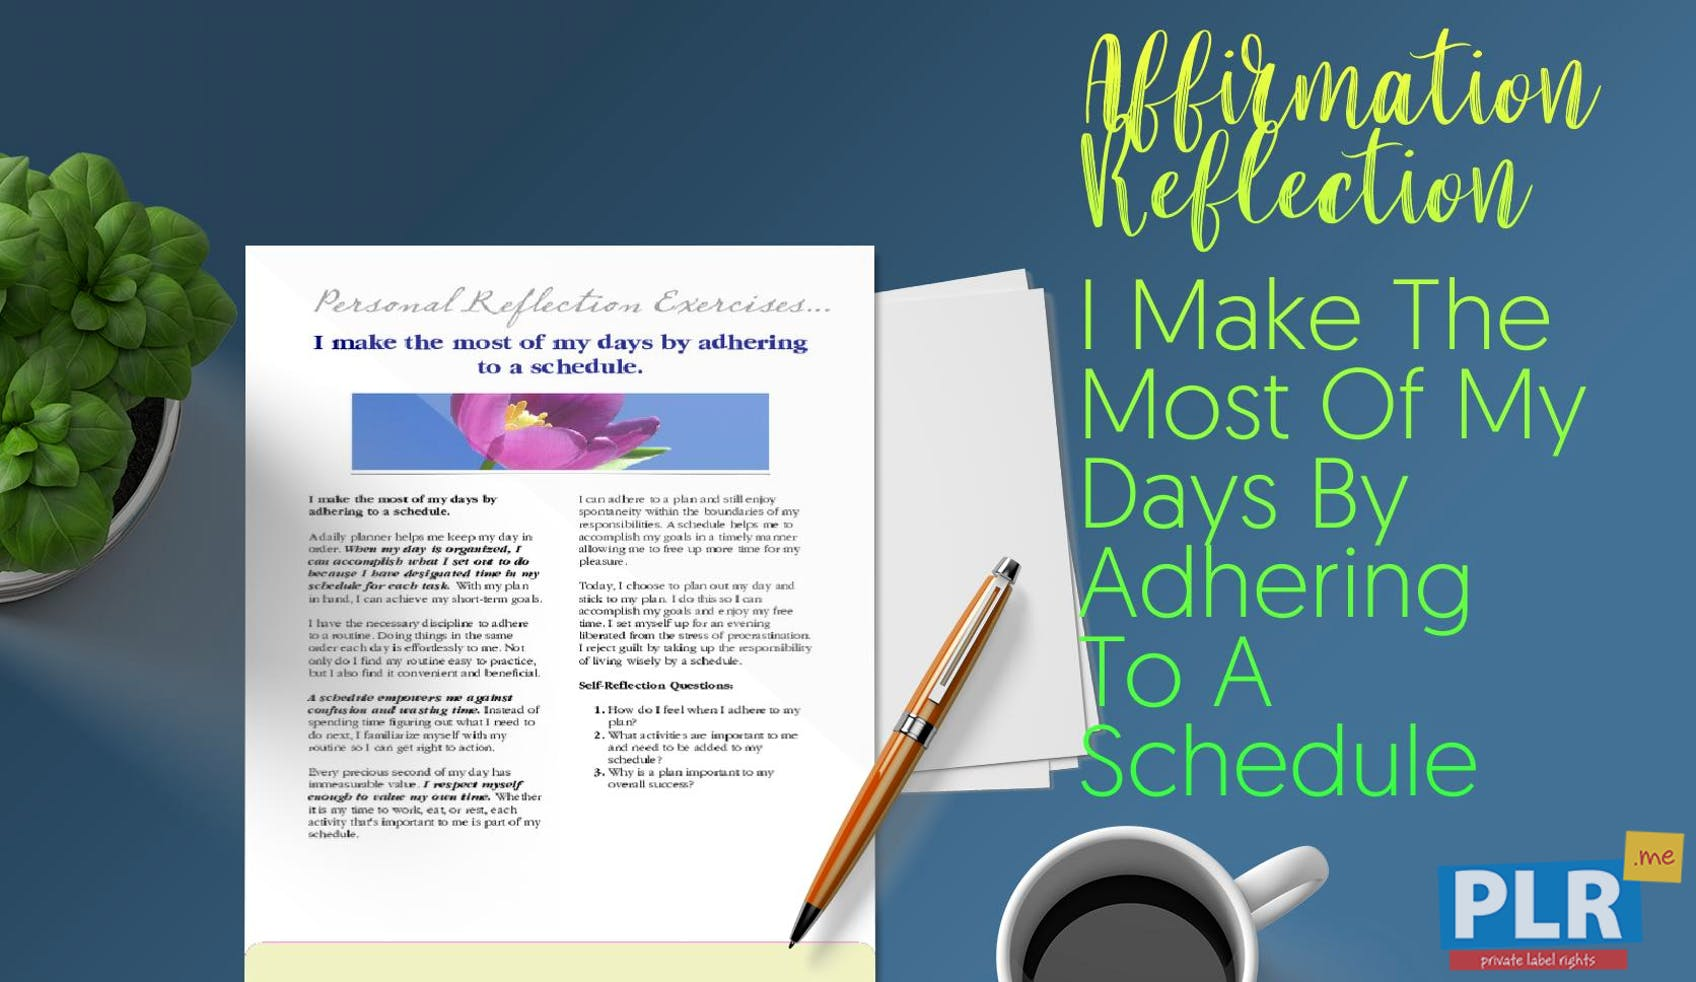 plr affirmation reflections i make the most of my days by adhering